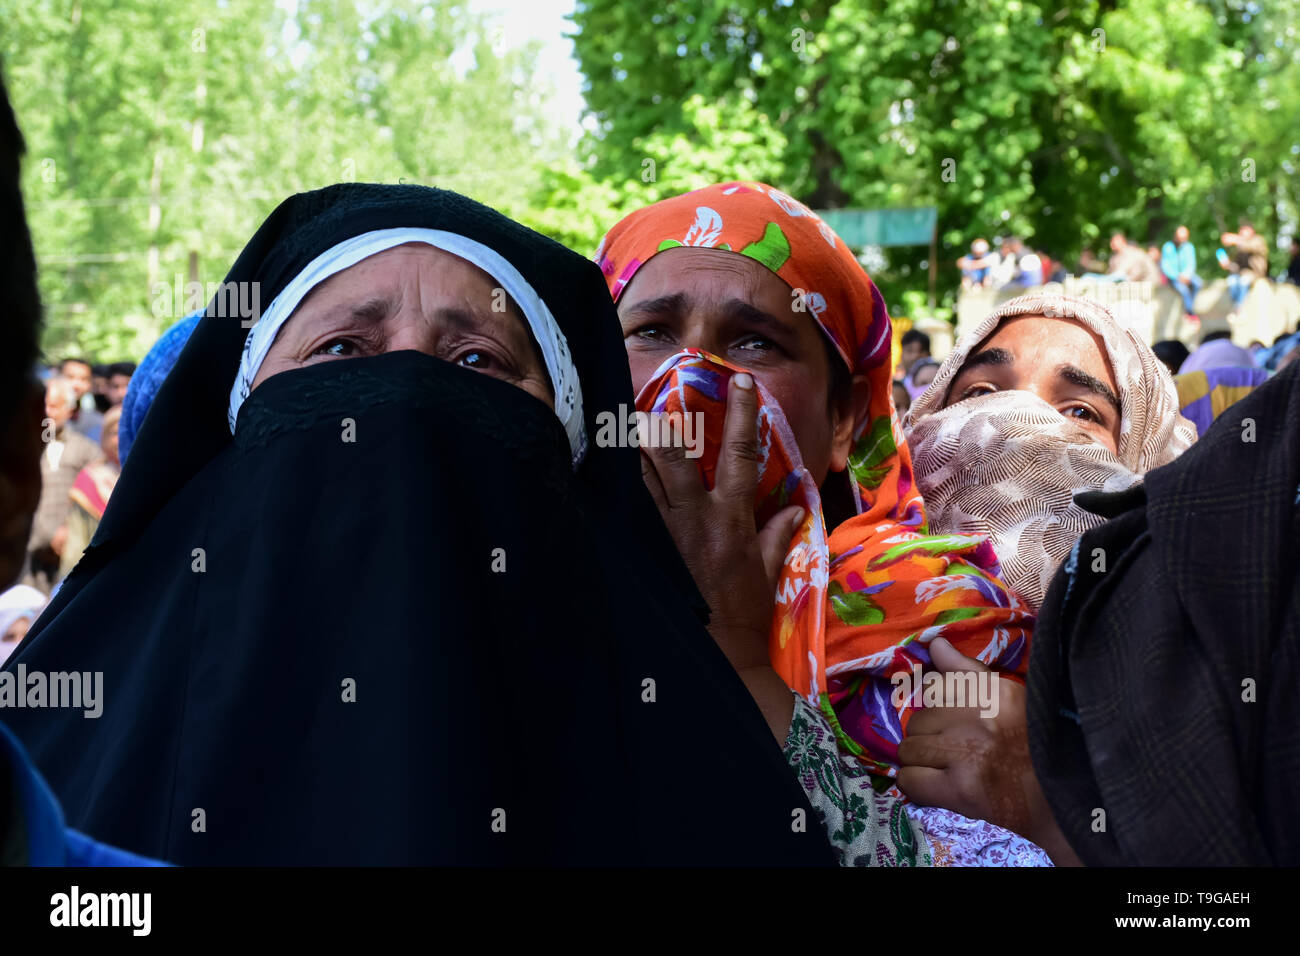 Relatives of the Slain Showkat Ahmed are seen mourning during the funeral ceremony at his residence in Pulwama, South of Srinagar. Thousands attended the funeral ceremony of slain Showkat Ahmed Dar at his residence in Panzgam Pulwama. Showkat was among the three Kashmiri Rebels killed in a gunfight in Pulwama. - Stock Image